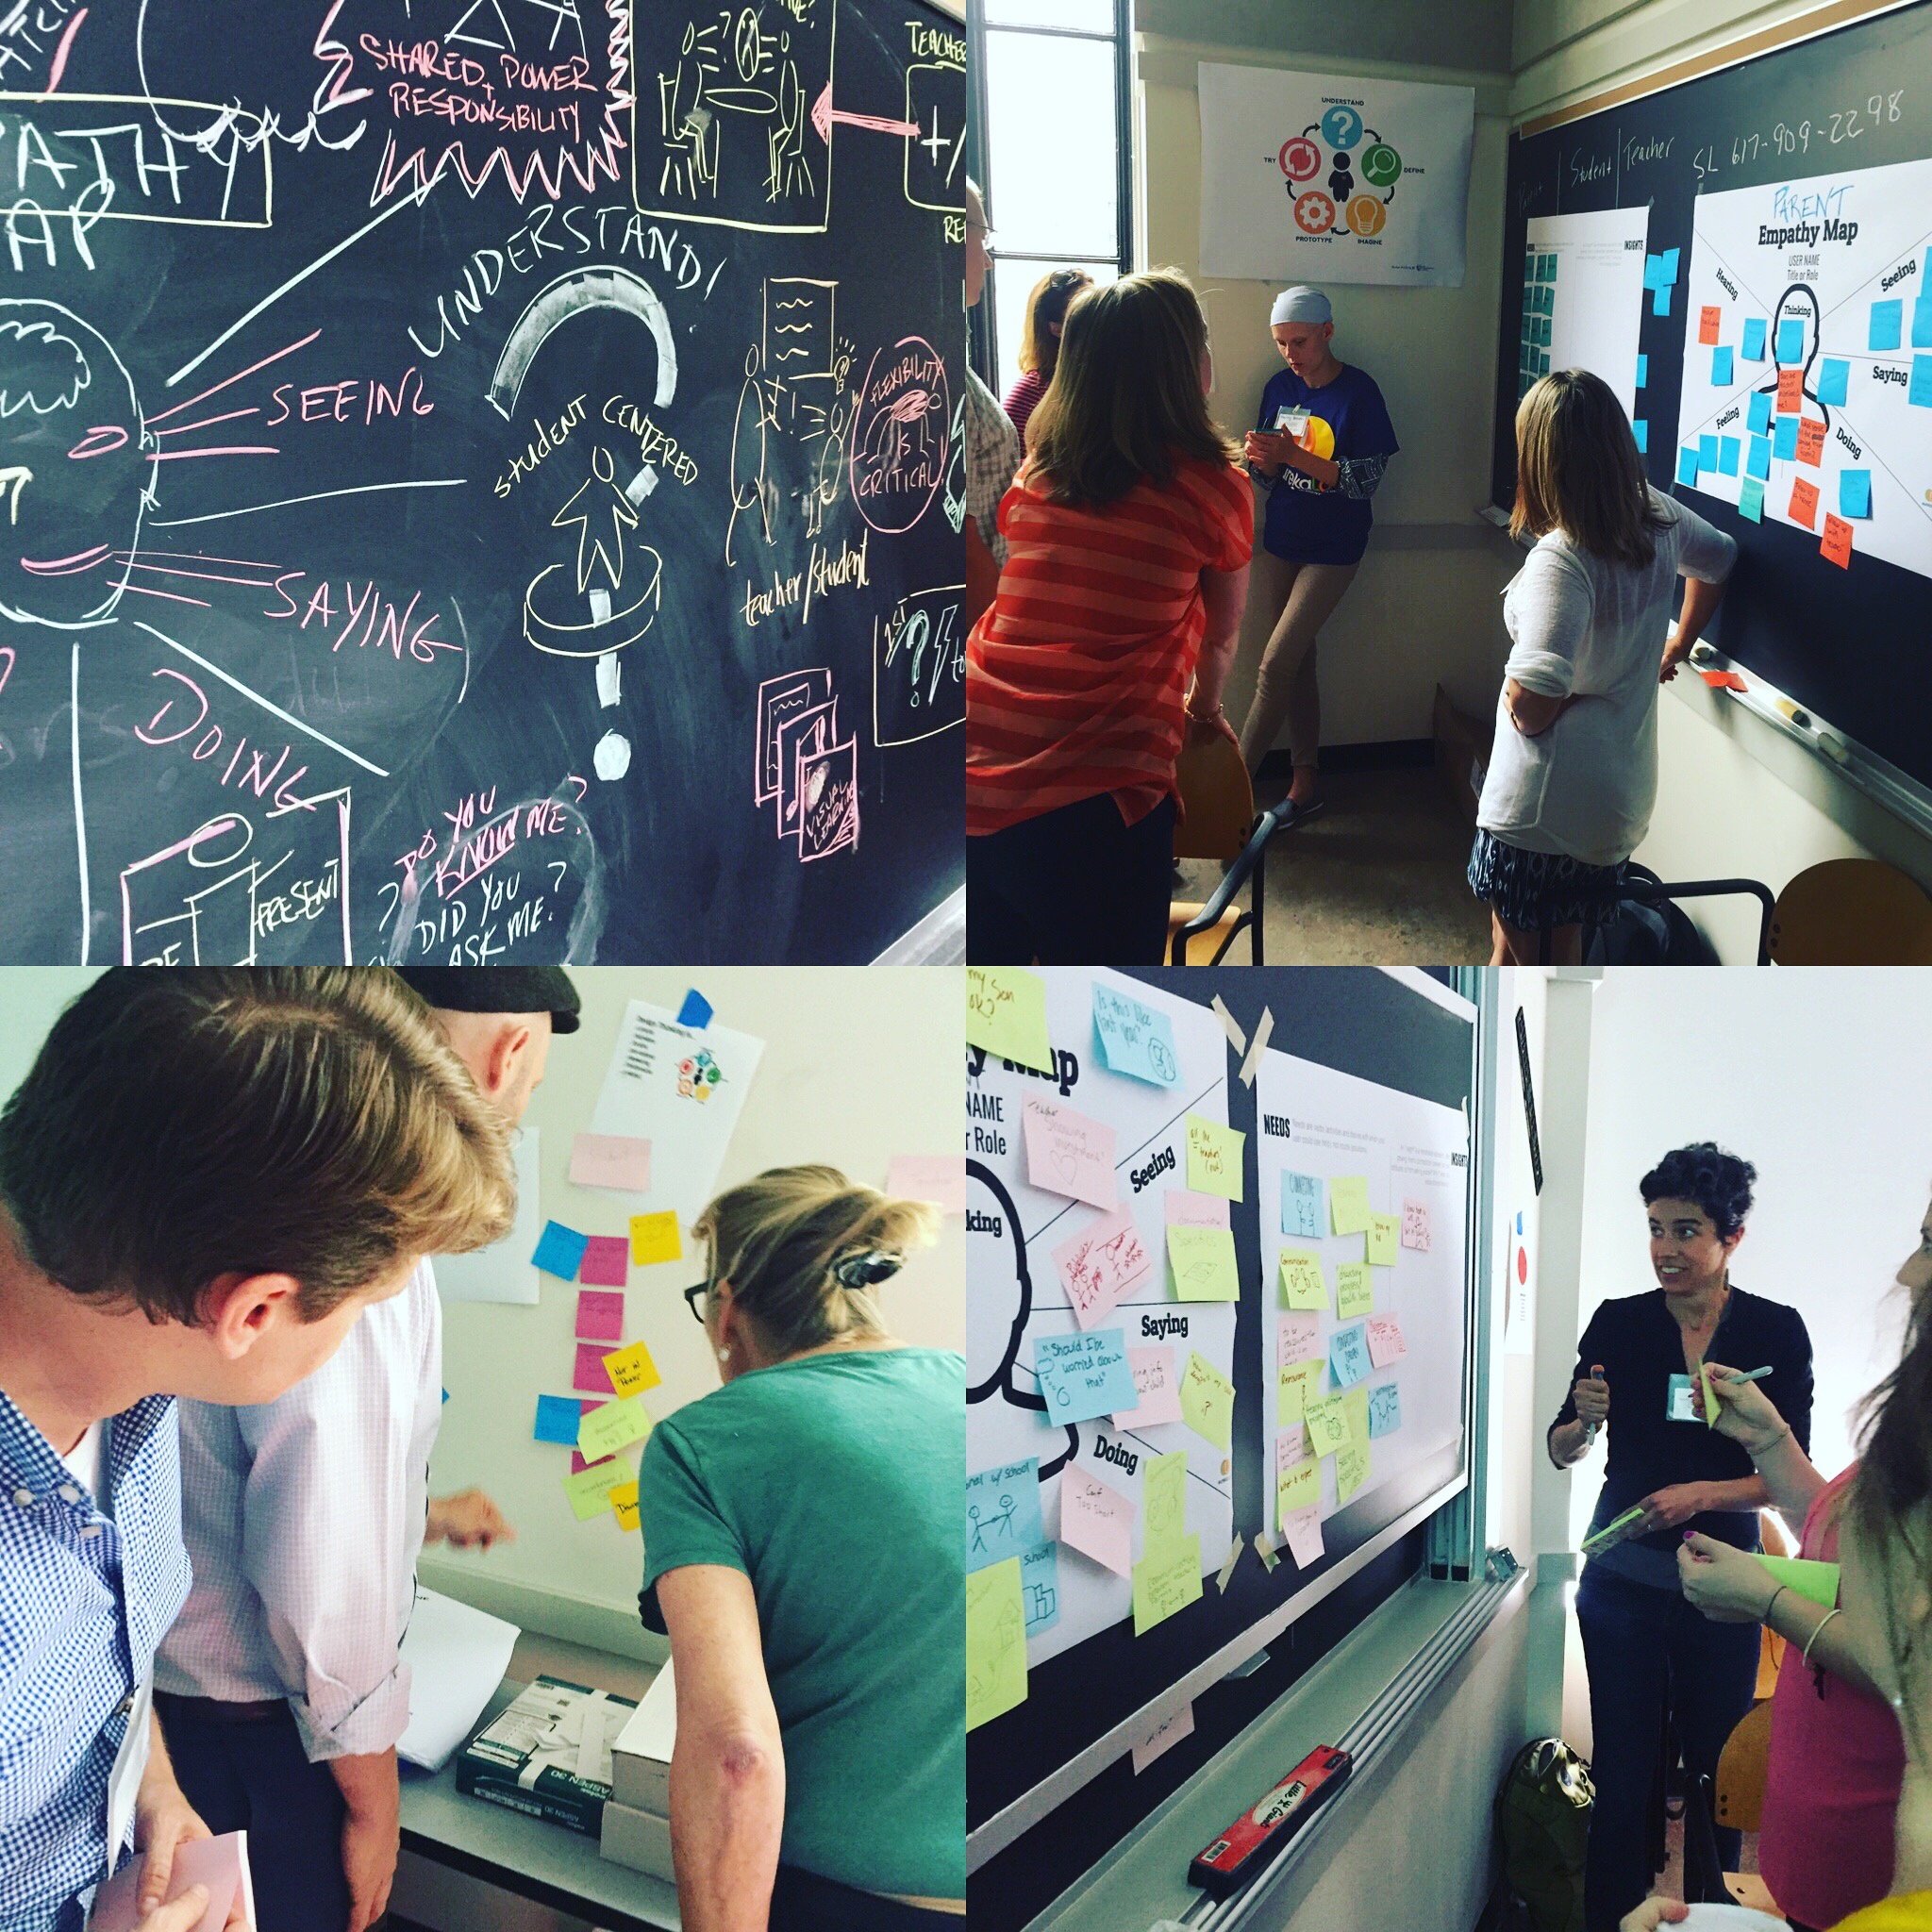 Learn Design Thinking By Doing Design Thinking - 3-Day Learning Immersion For TeachersJune 19-21, 2019@ The Meadowbrook School of Weston10 Farm Rd Weston MA